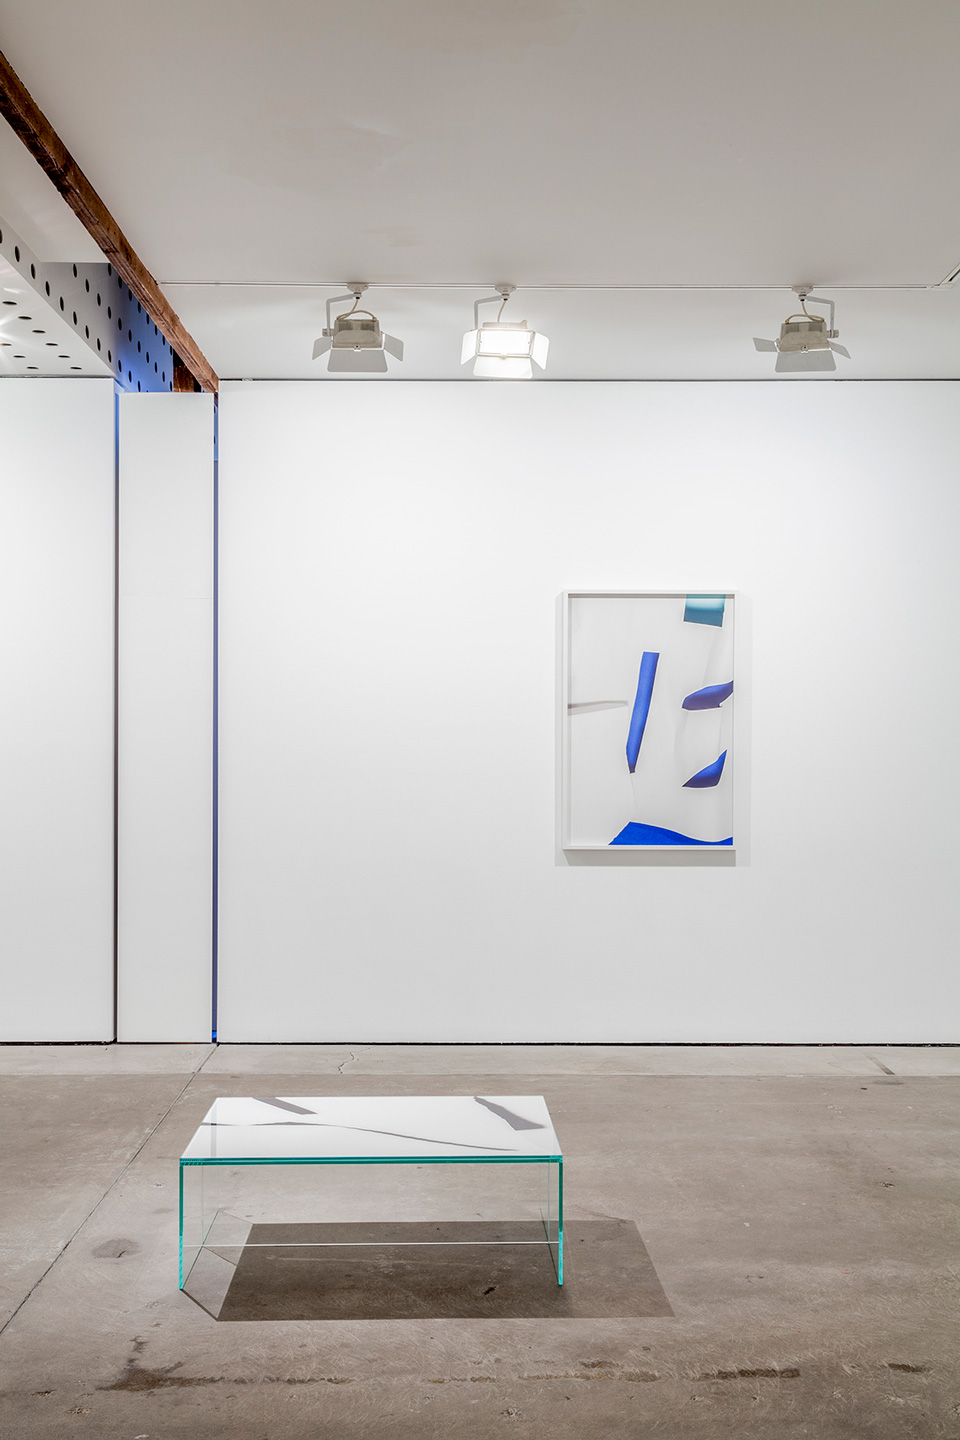 <p>Georgia Hutchison and Arini Byng. Installation detail, Lit from the Top: Sculpture through Photography, Centre for Contemporary Photography. Photography: Christo Crocker.</p>